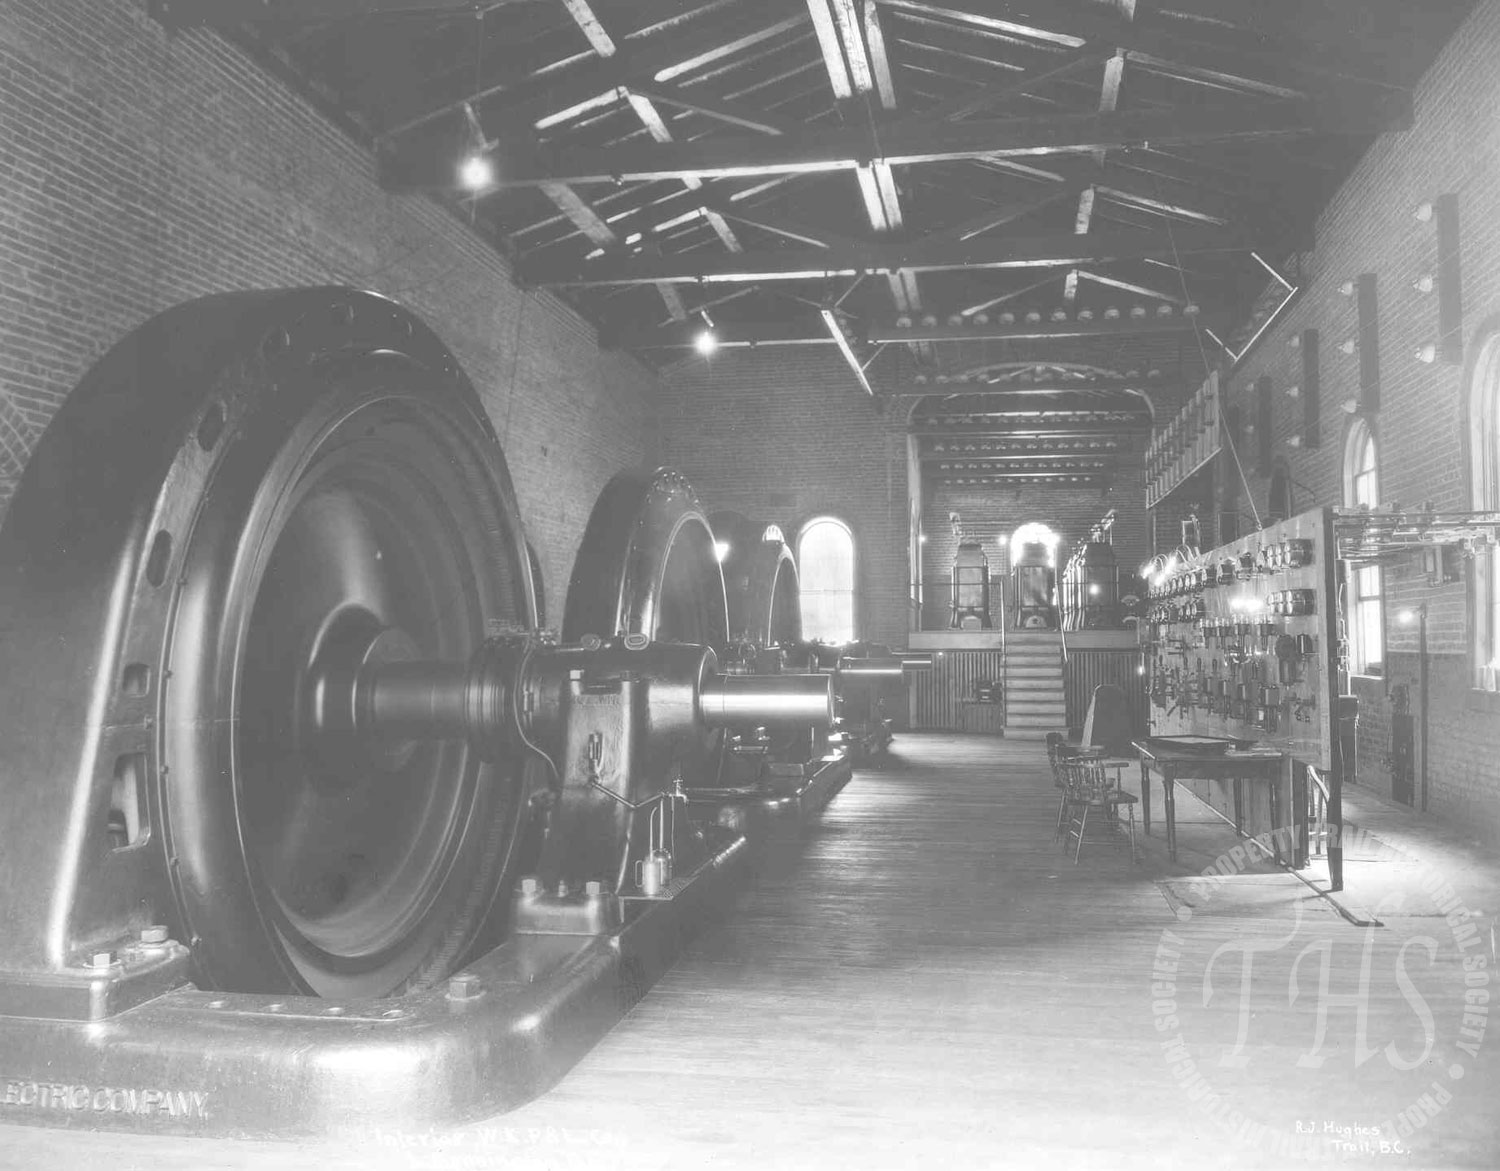 Inside Lower Bonnington Powerhouse with view towards upper room, no operators (Hughes) - 1925